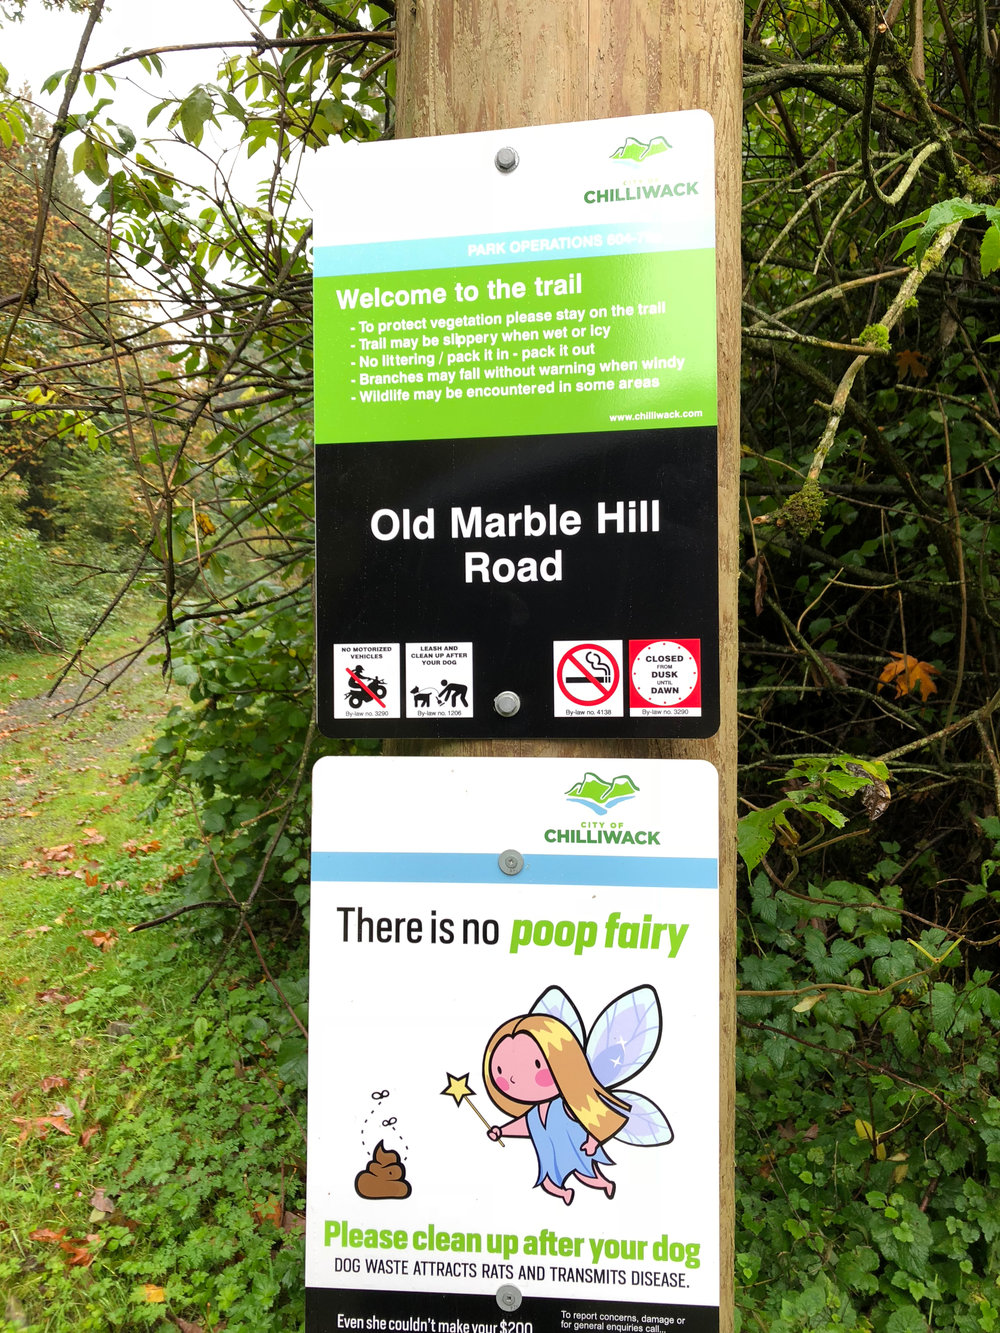 Old-Marble-Hill-Road-Trail.jpg